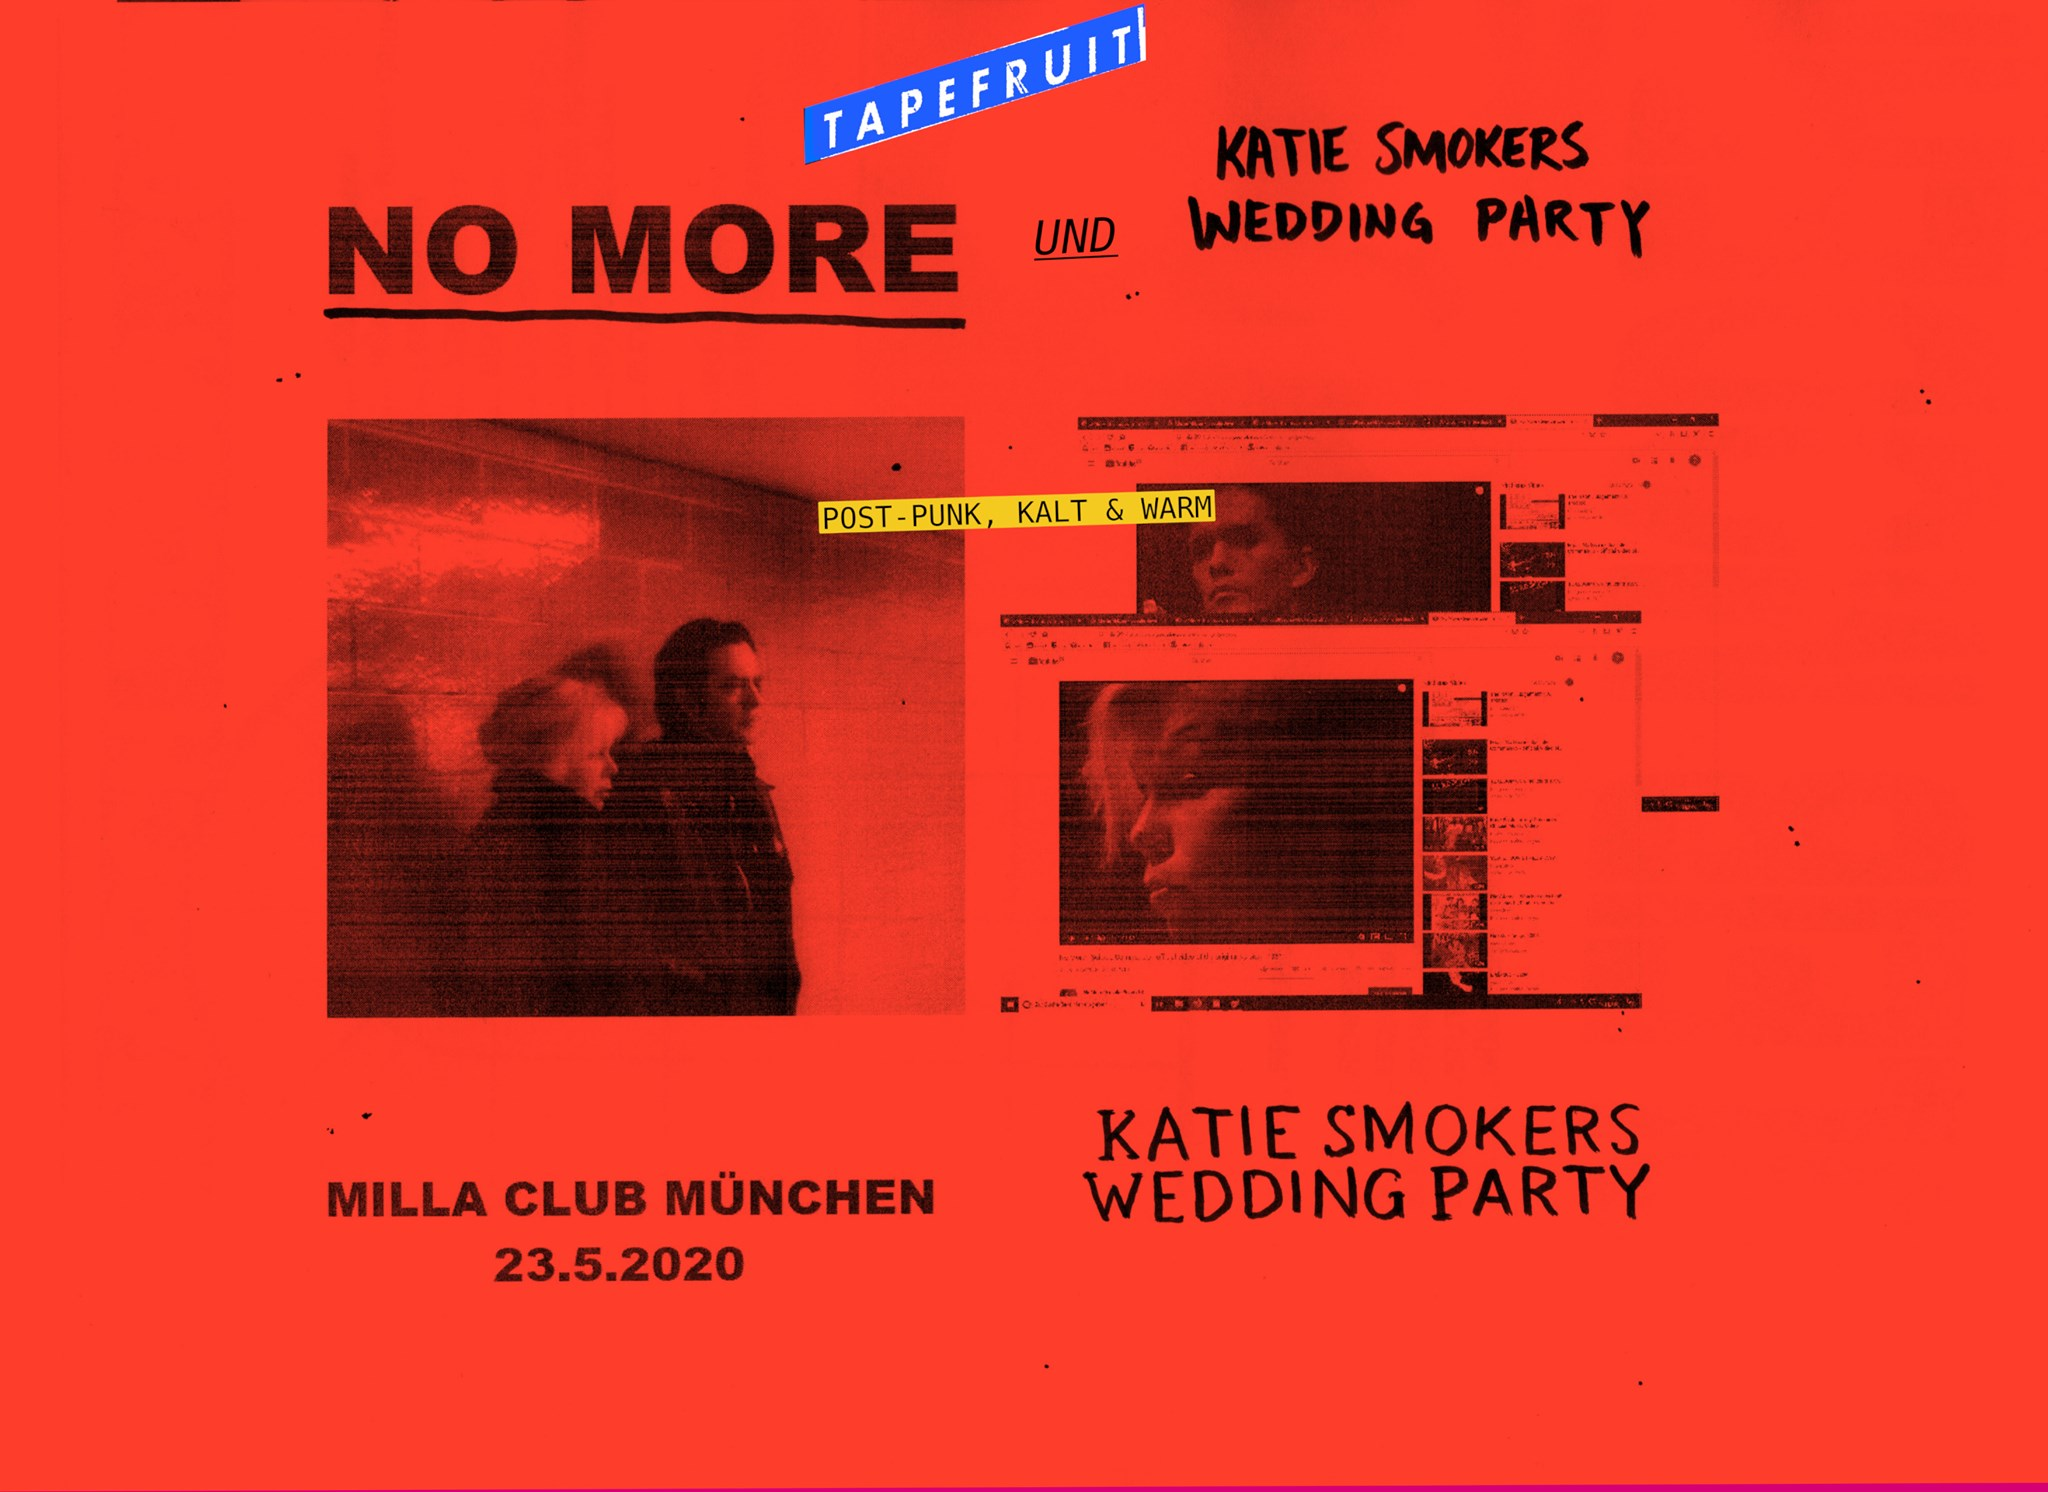 No More & Katie Smokers Wedding party